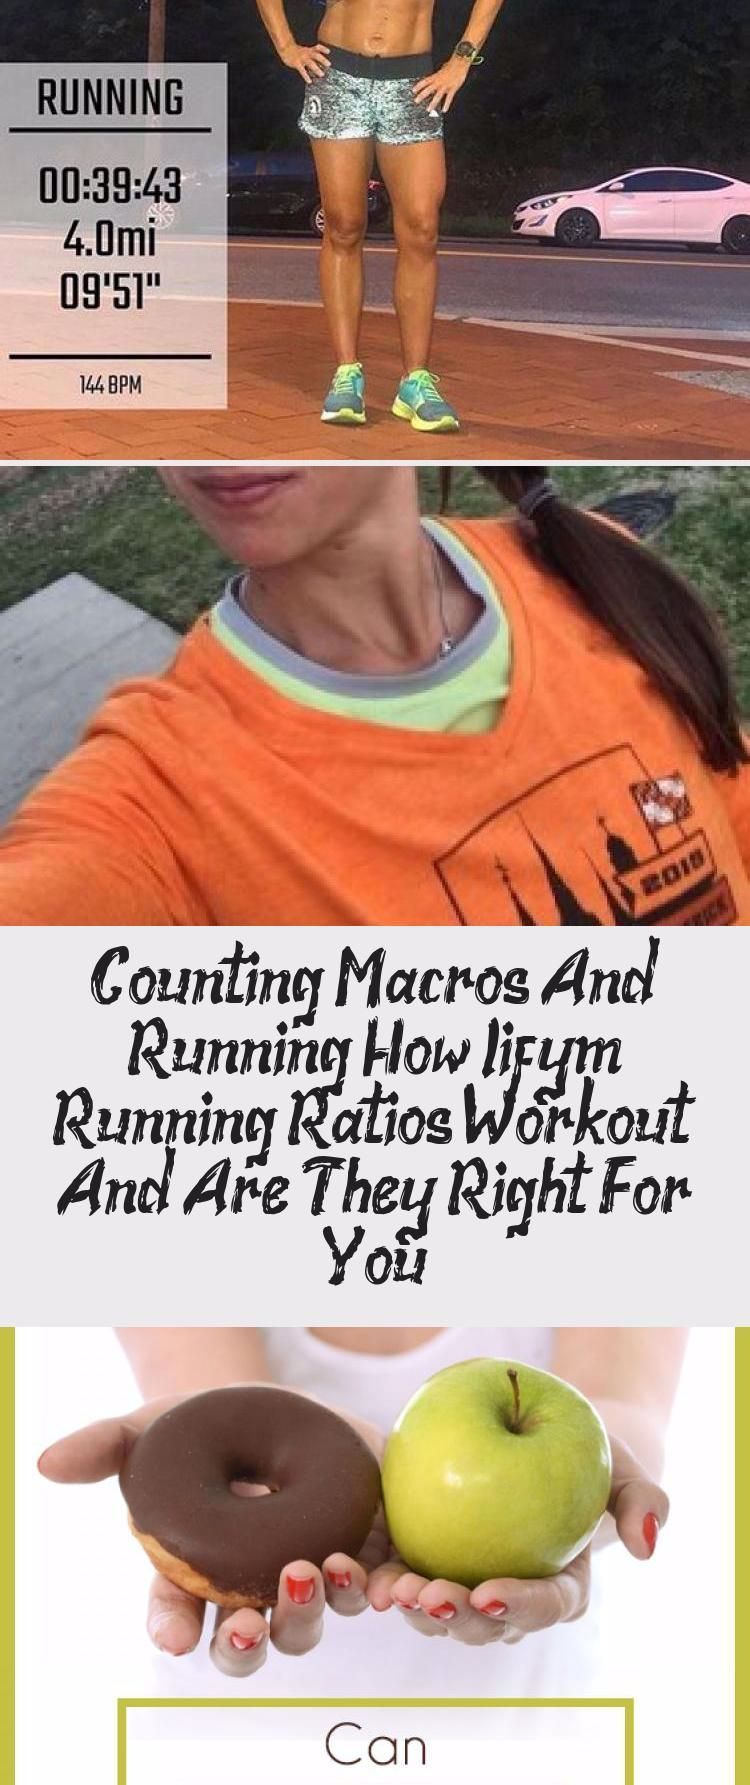 Counting Macros And Running: How Iifym Running Ratios Workout And Are They Right For You? - health a...